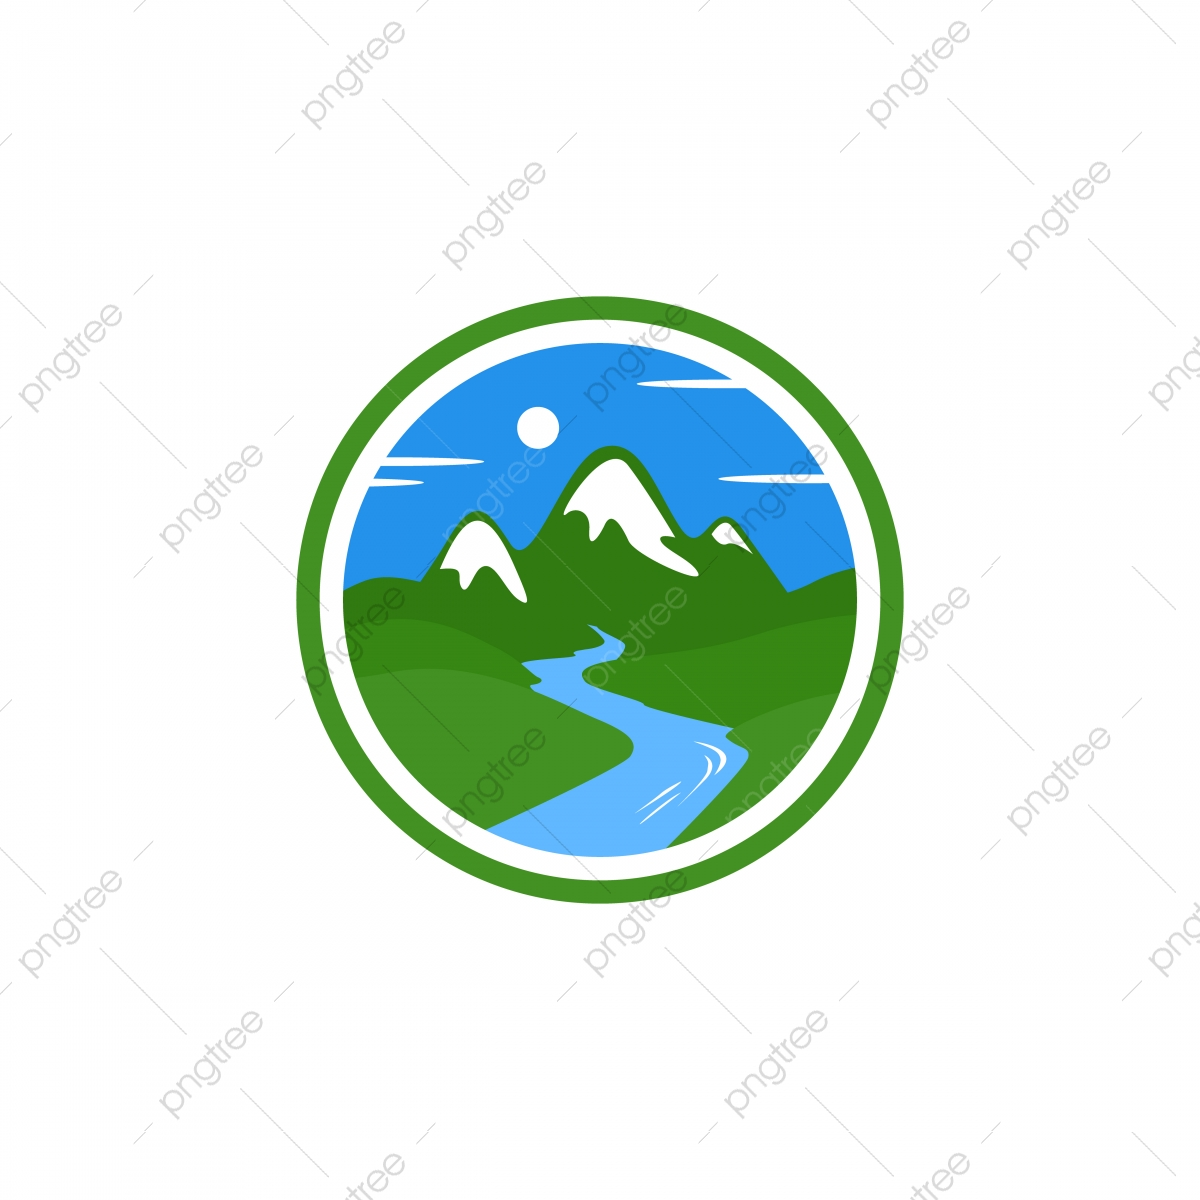 river vector png free river water mountain river river bridge vector images pngtree https pngtree com freepng mountain river vector logo 4157736 html